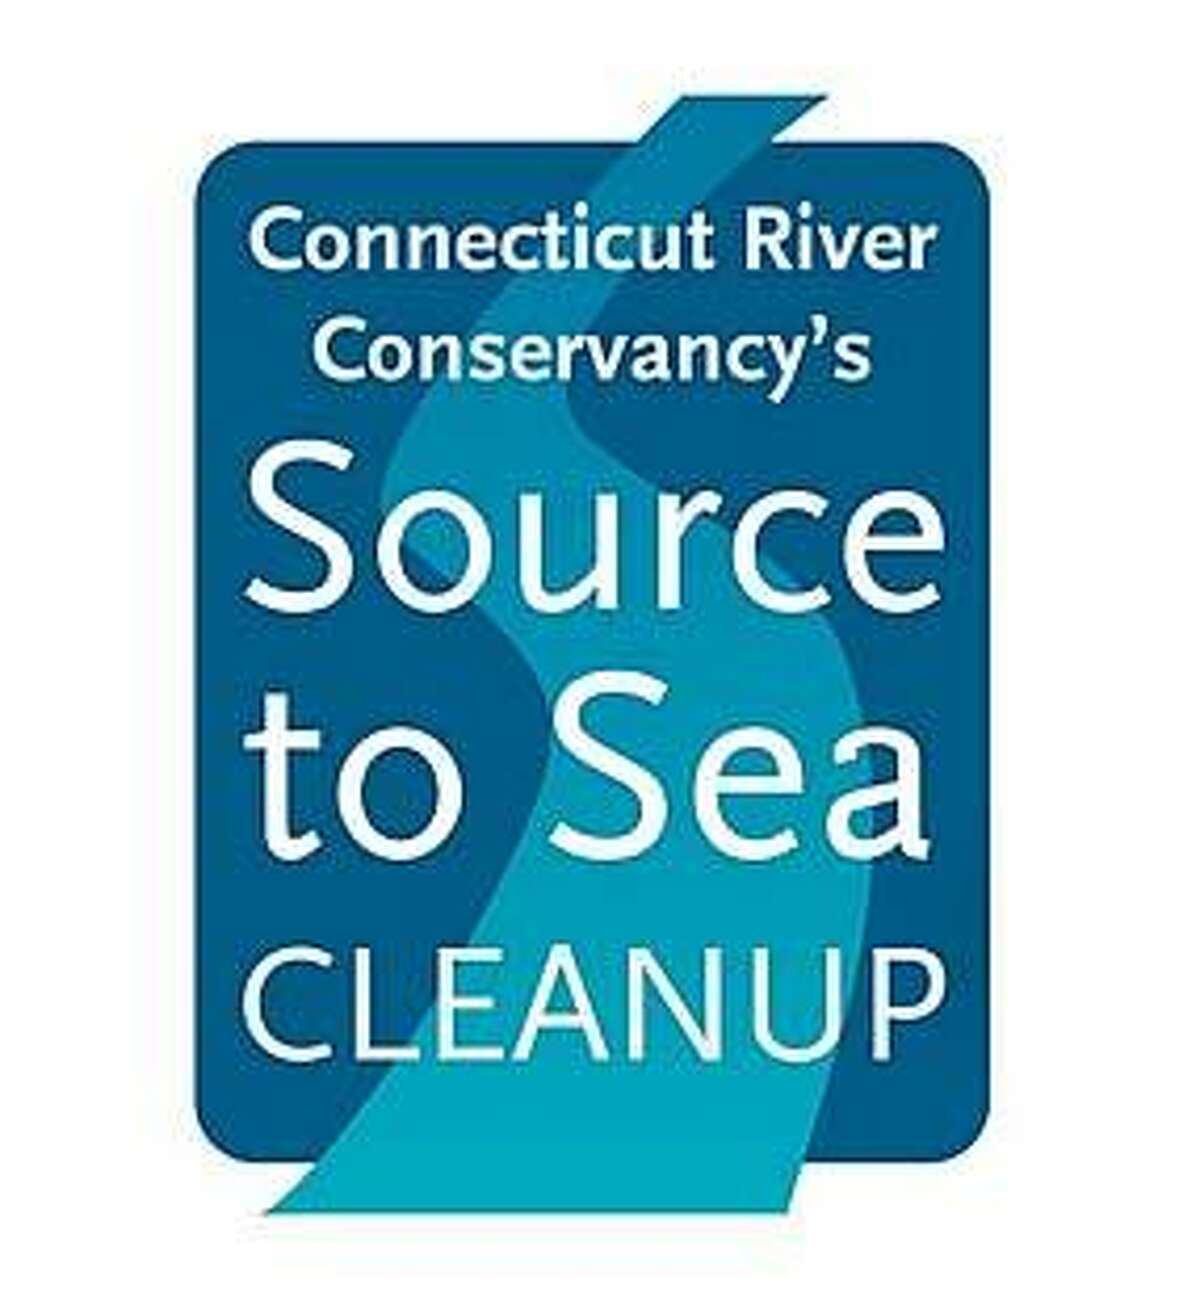 The Connecticut River Conservancy's 22nd Annual Source to Sea Cleanup is scheduled for Sept. 28 and Sept. 29, 2018.